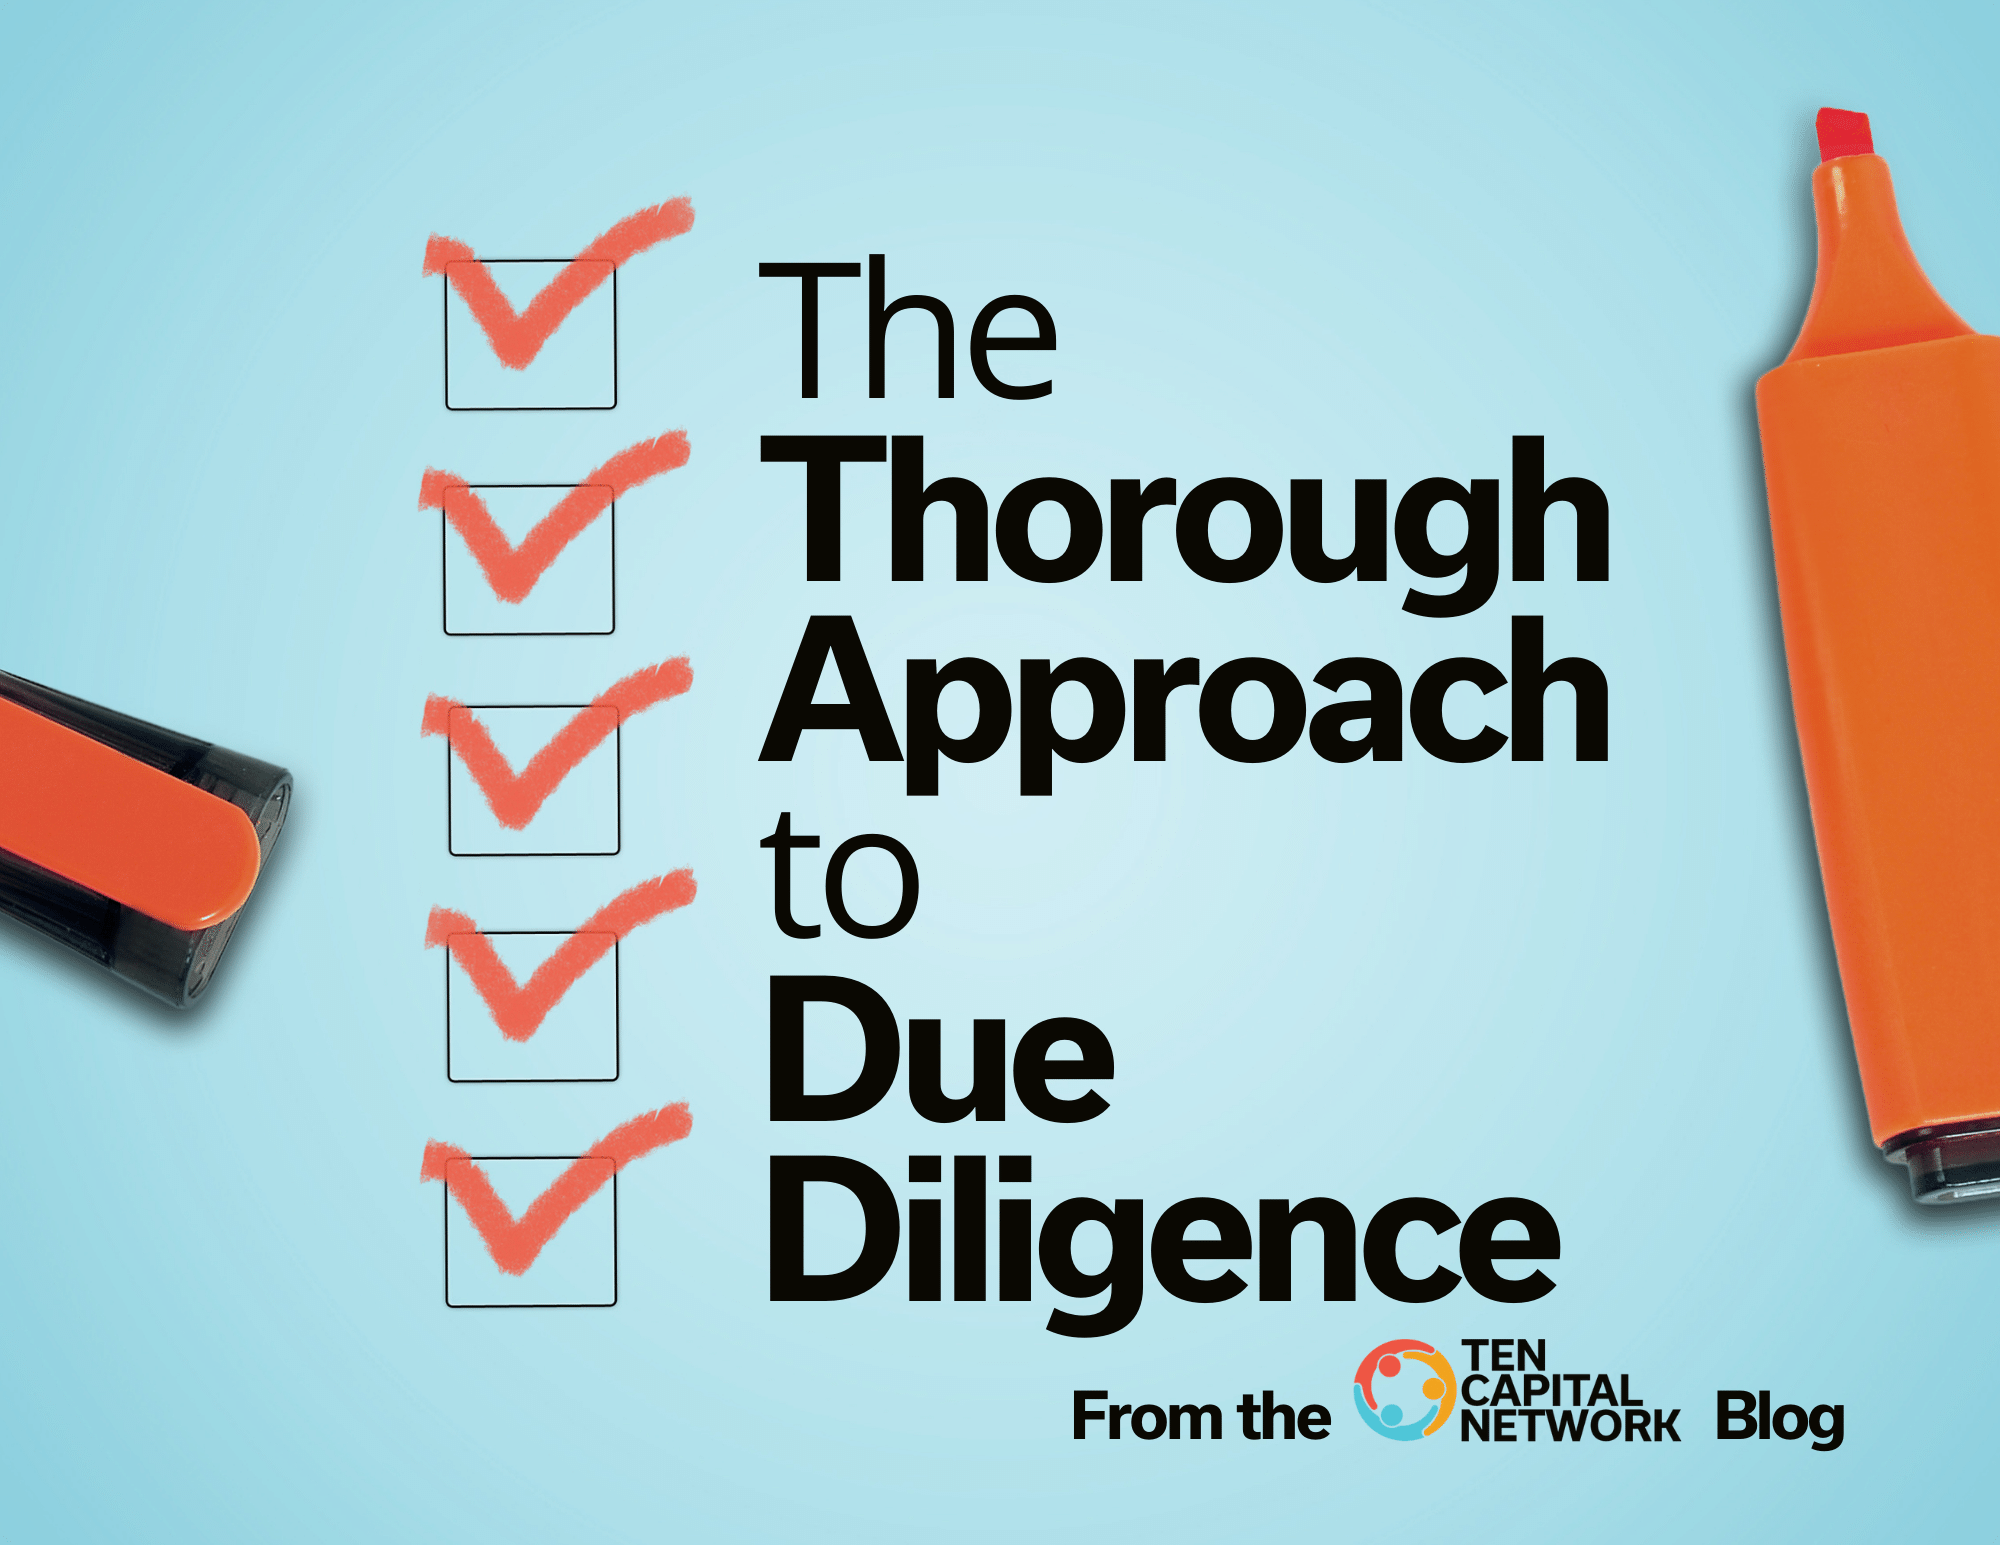 The Thorough Approach to Due Diligence